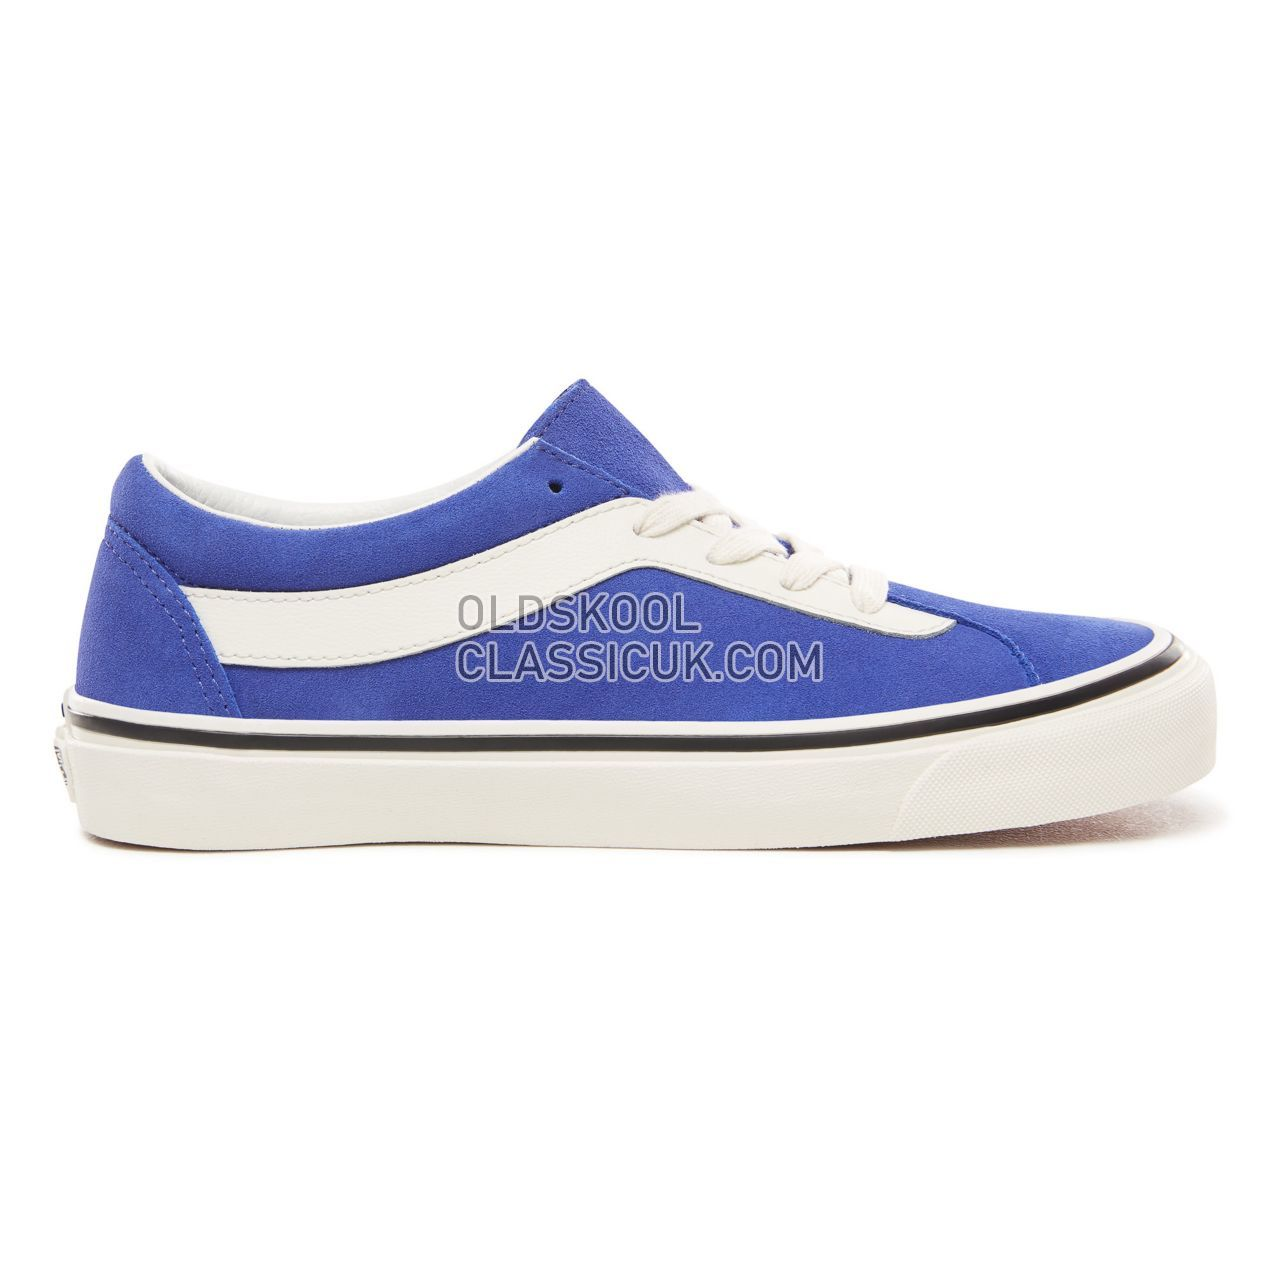 Vans Design Assembly Bold Ni Sneakers Womens (Design Assembly) Surf The Web/Marshmallow VN0A3WLPRSN Shoes